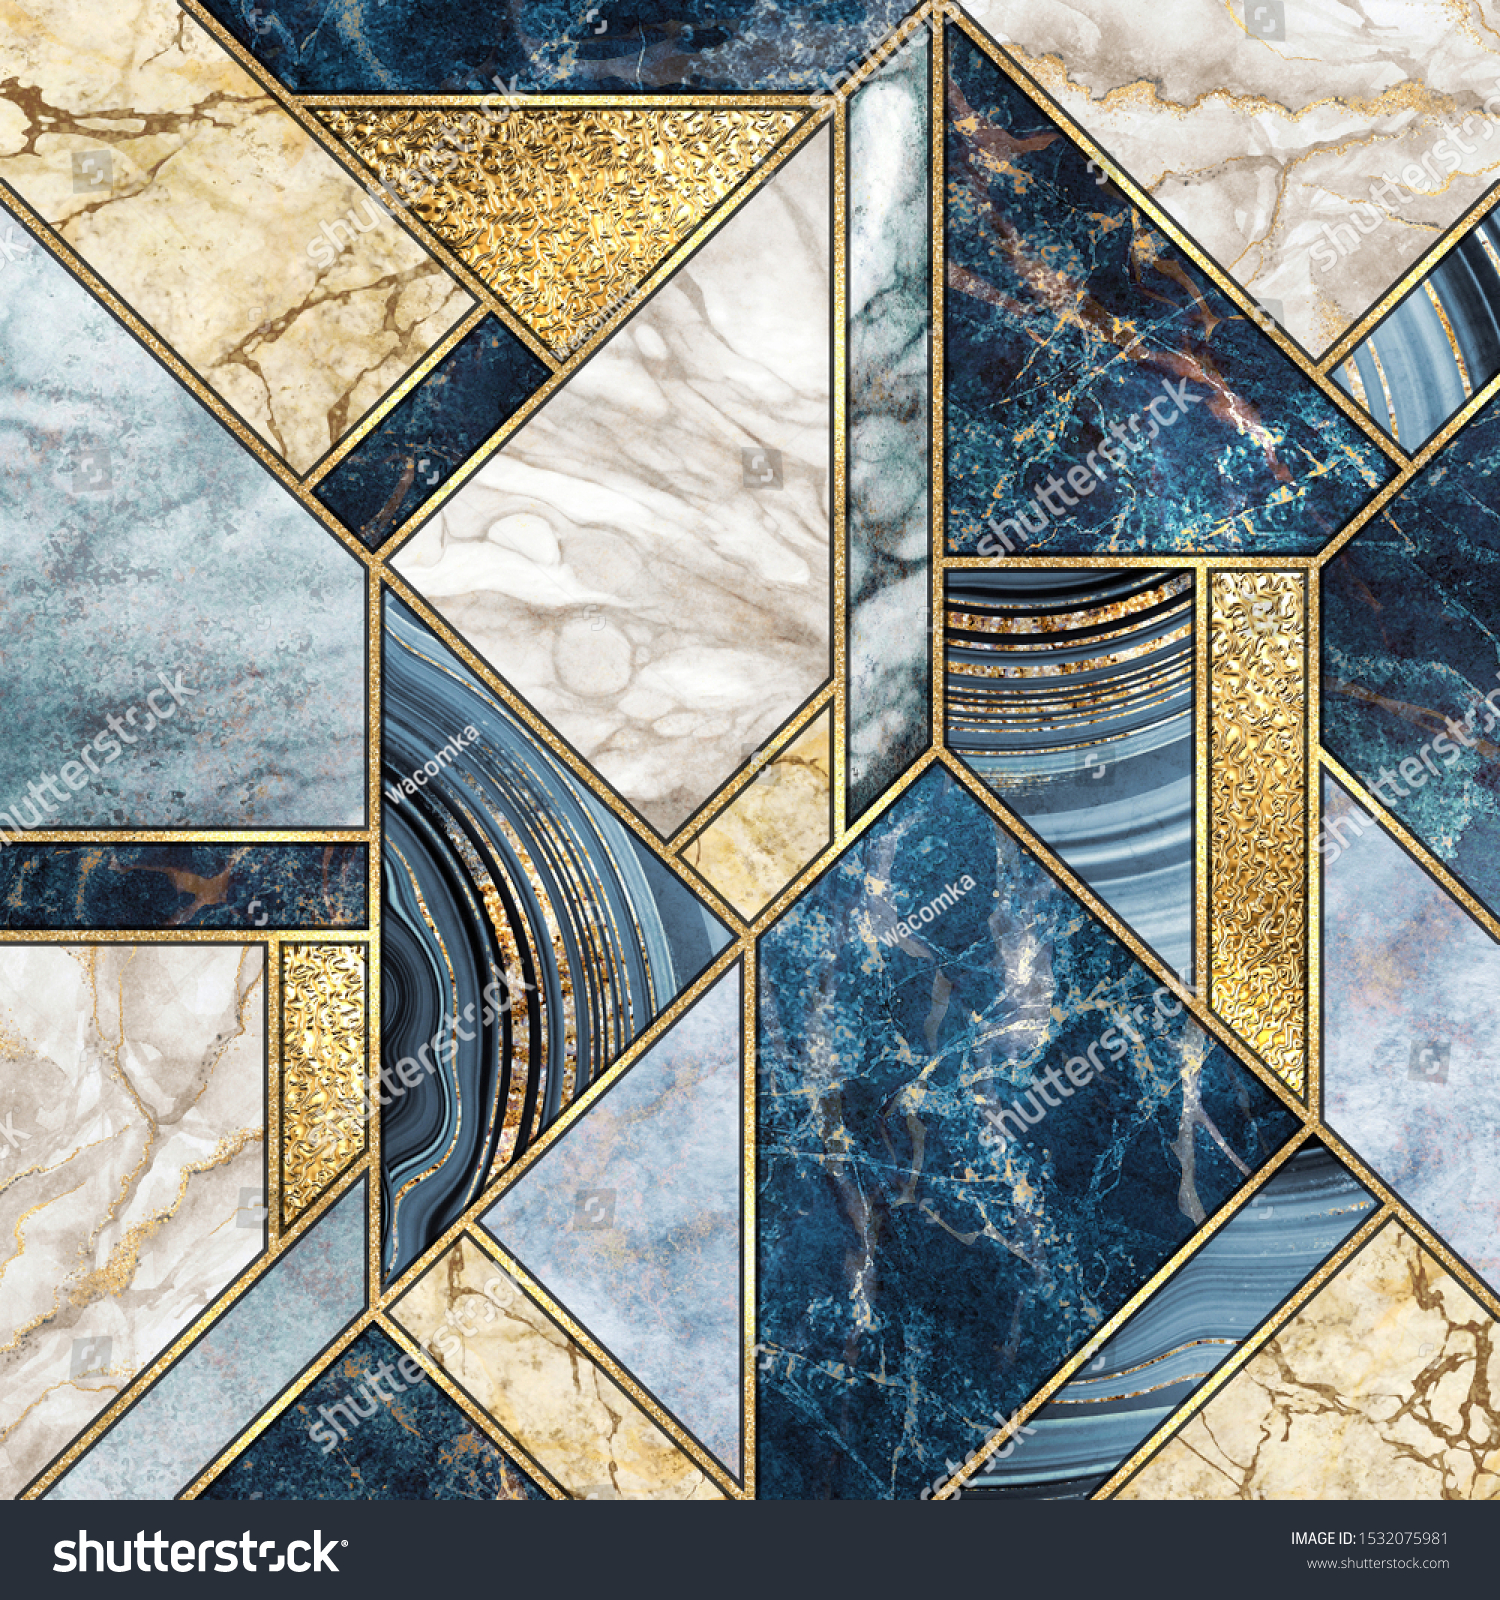 https www shutterstock com image illustration abstract background modern marble mosaic artificial 1532075981